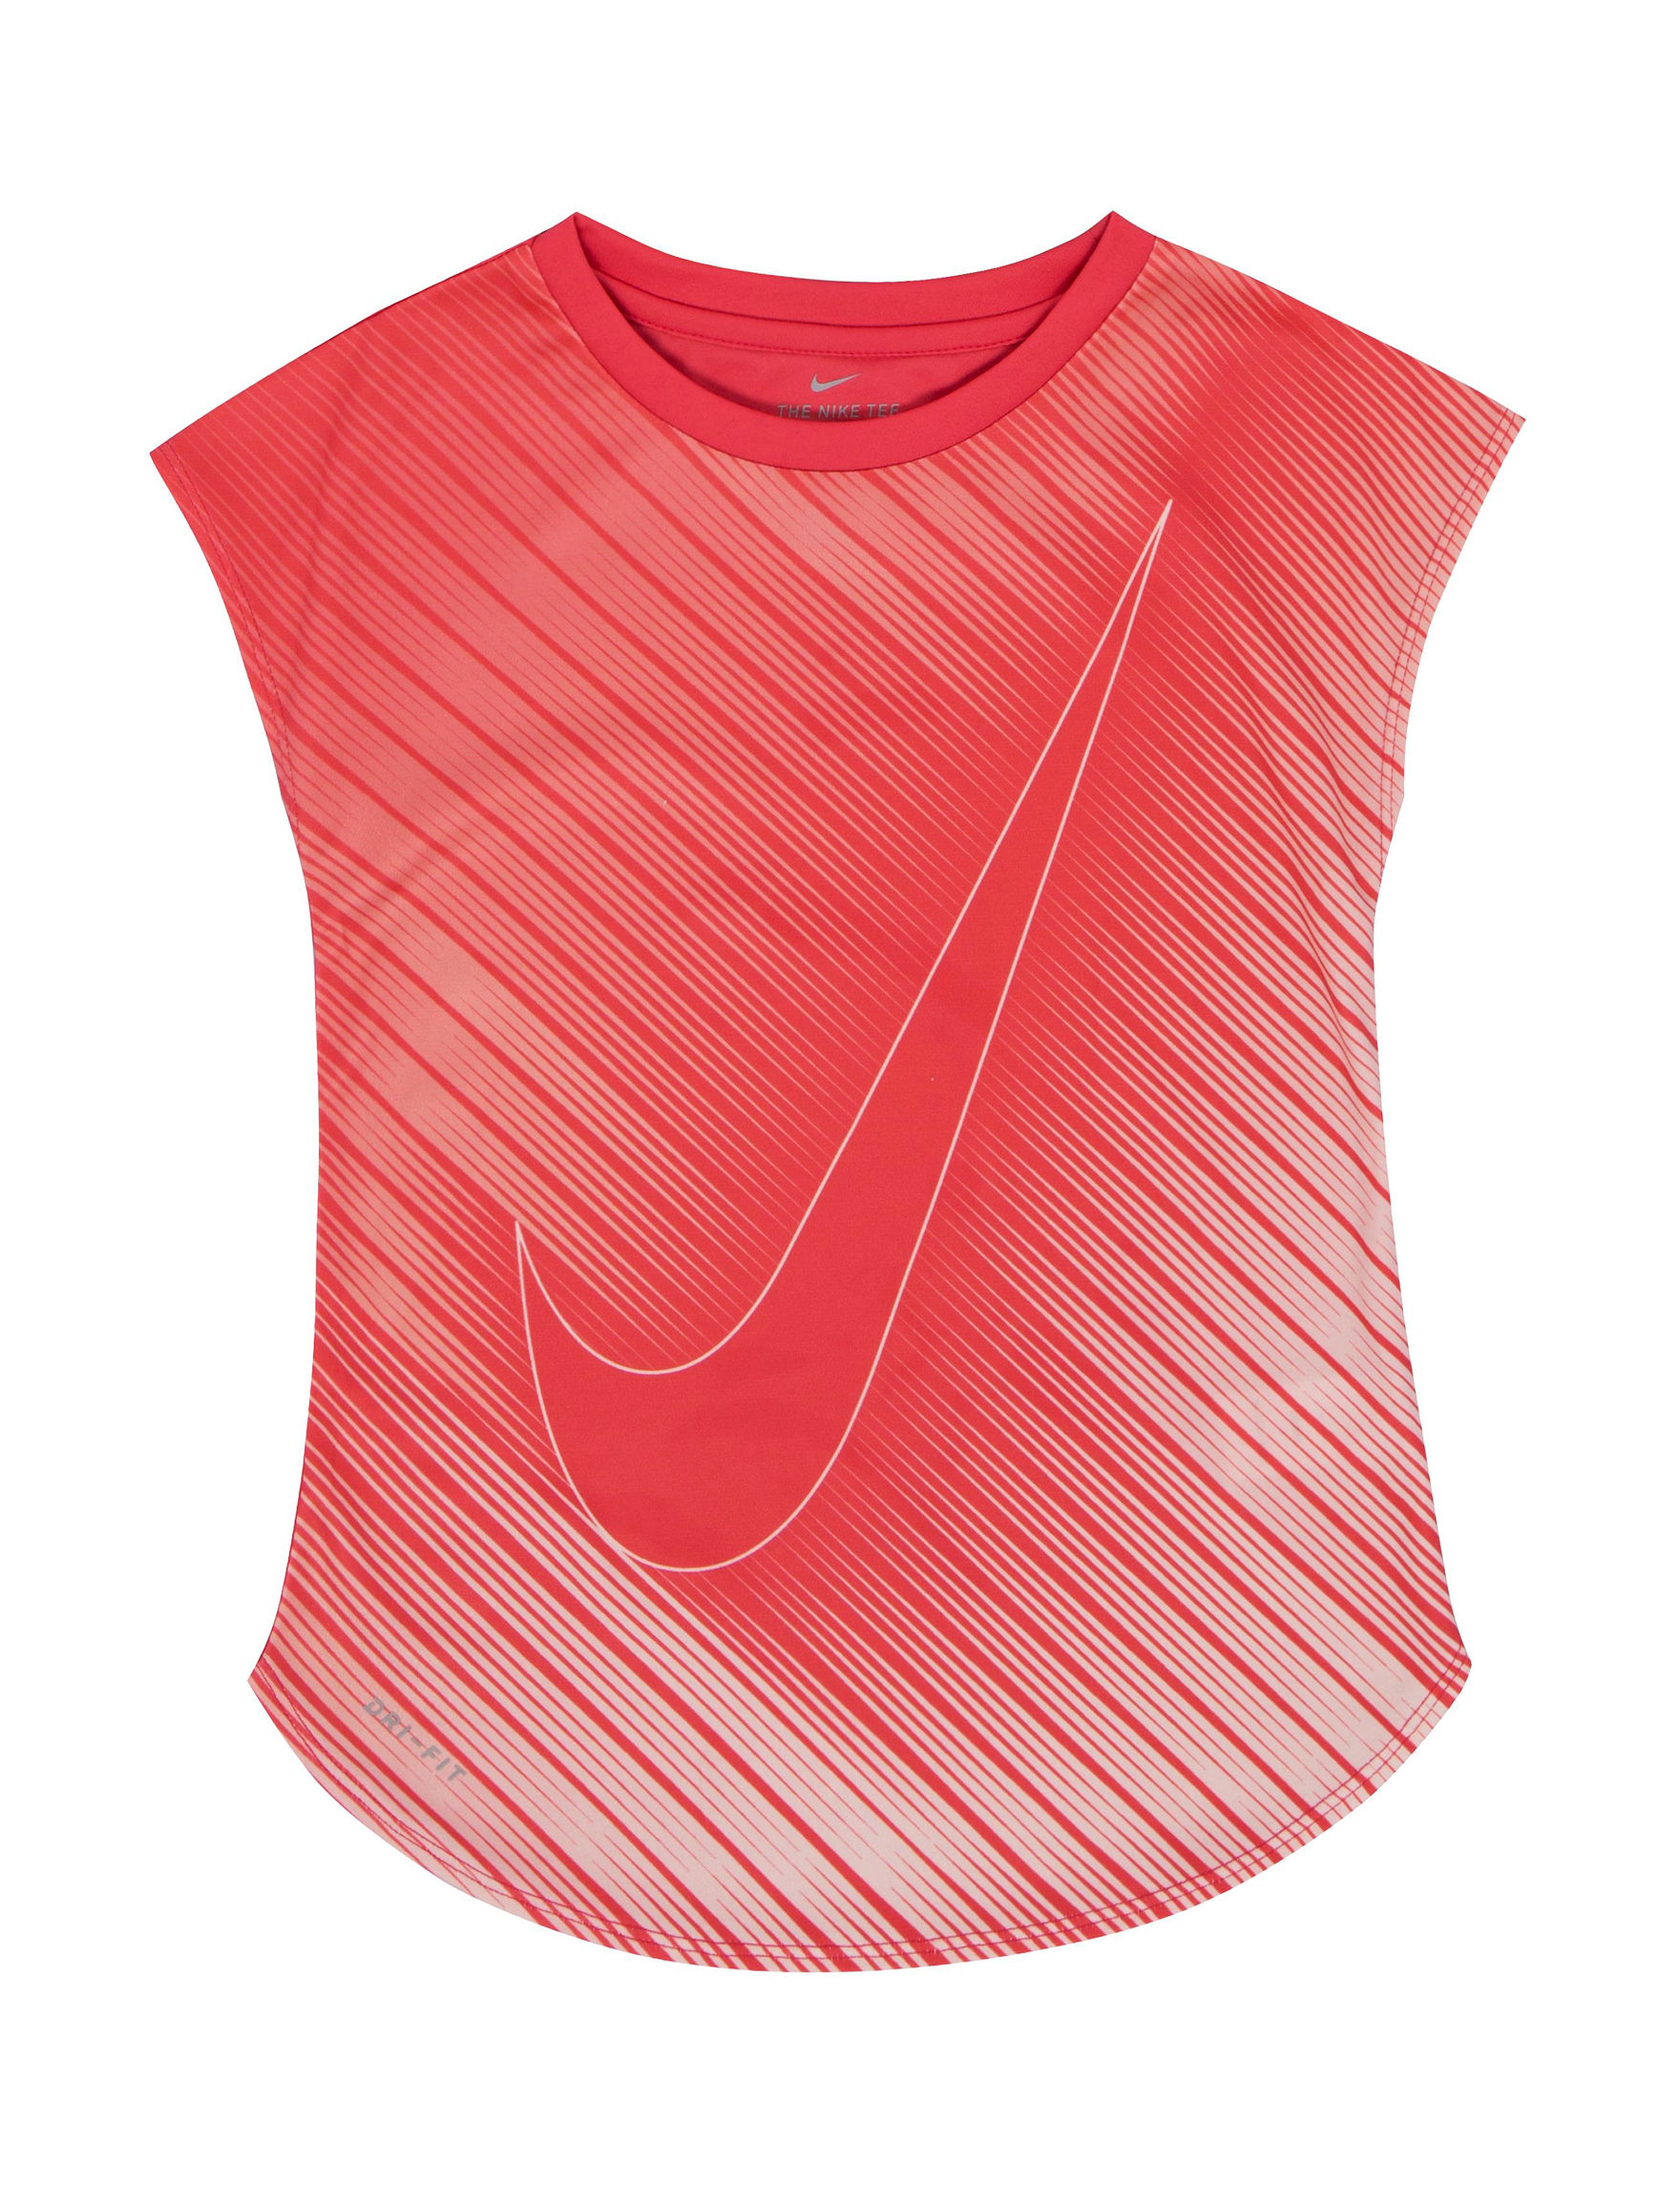 Nike Red Tees & Tanks